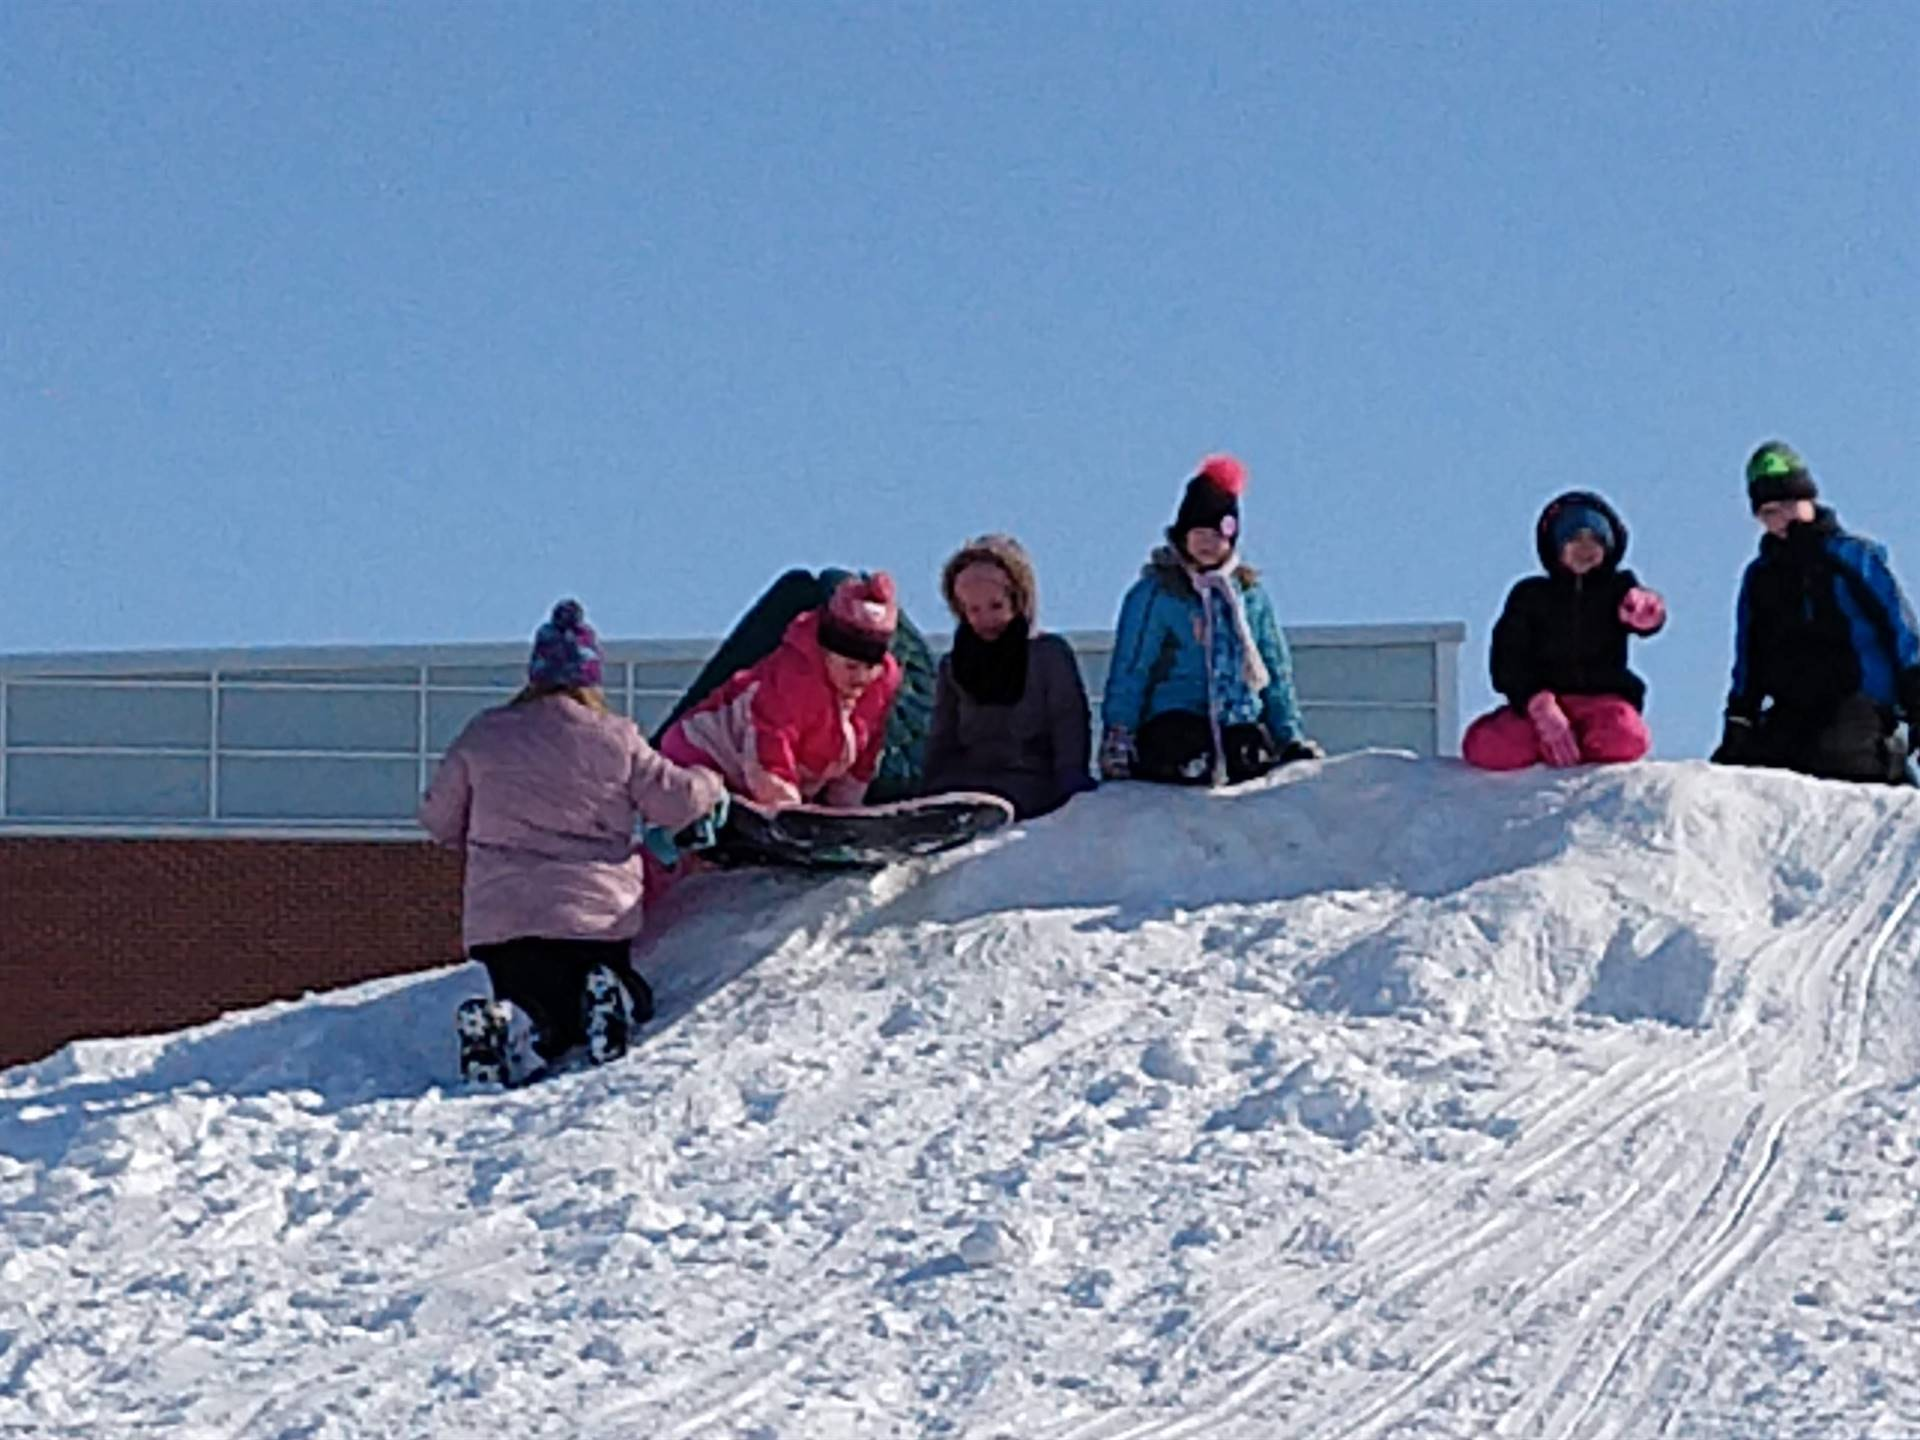 Students have fun on the snowy hillside at recess.